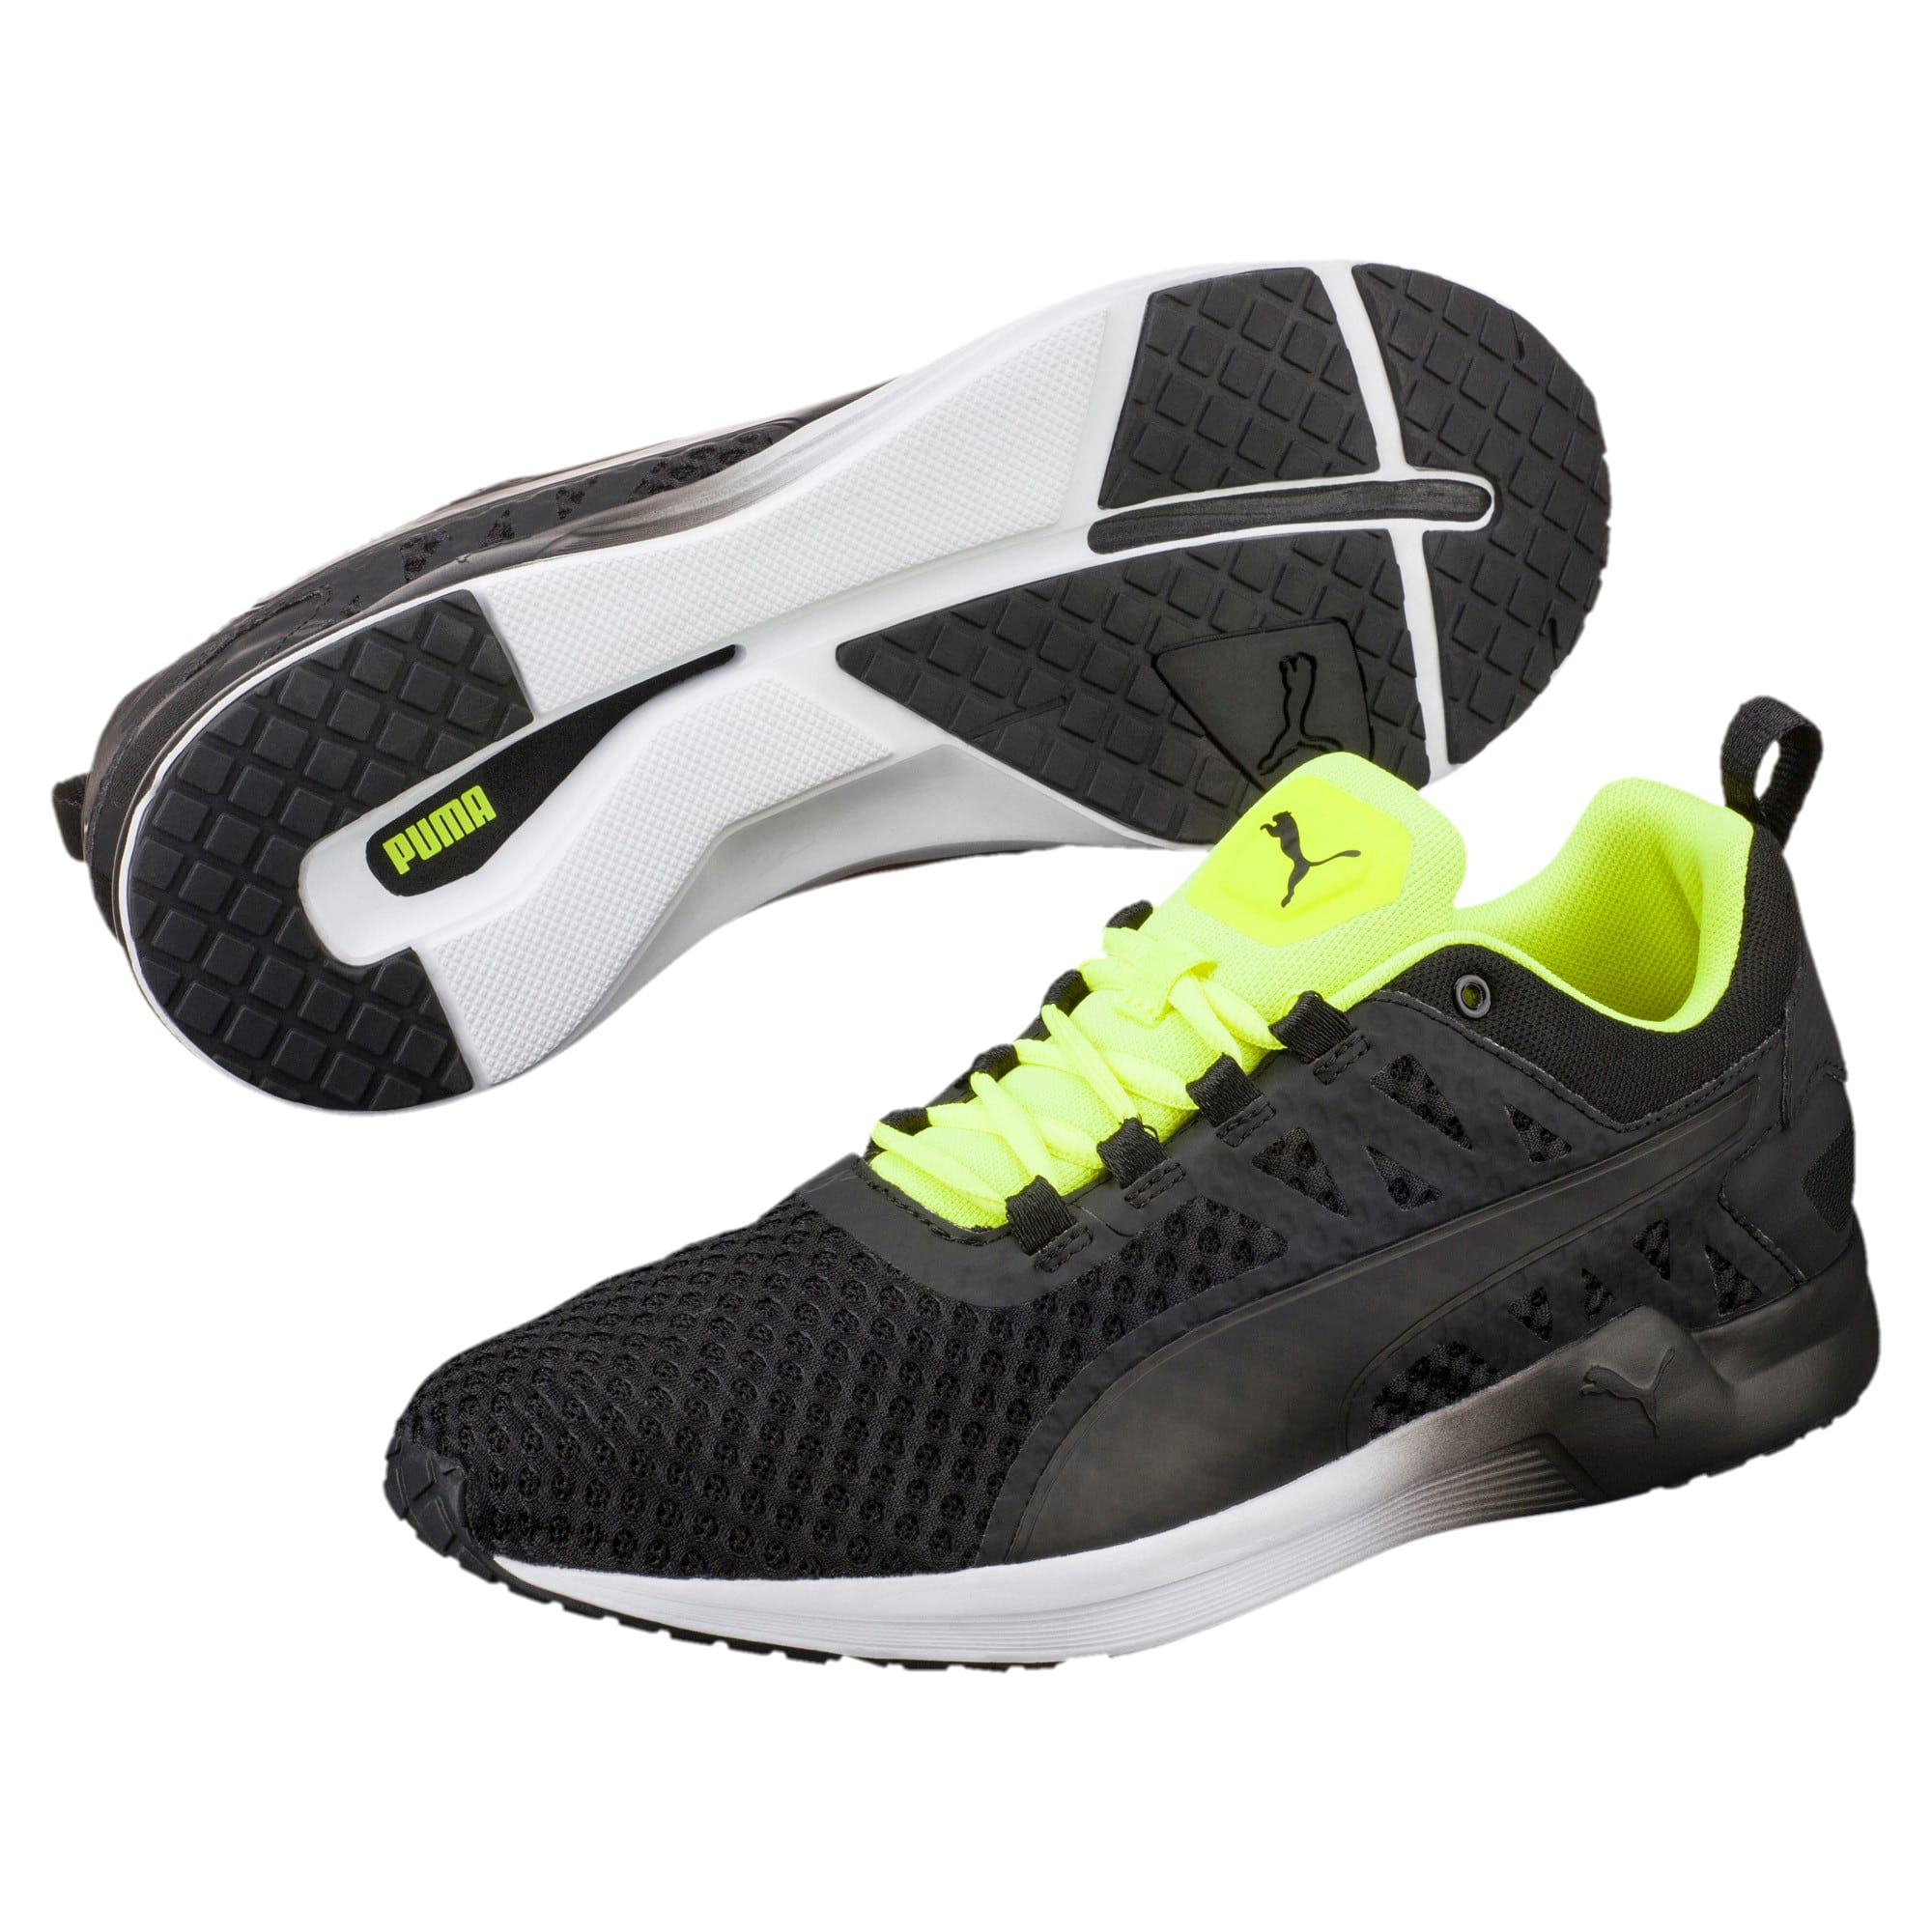 Thumbnail 2 of Pulse XT v2 Mesh Men's Training Shoes, Puma Black-Safety Yellow, medium-IND